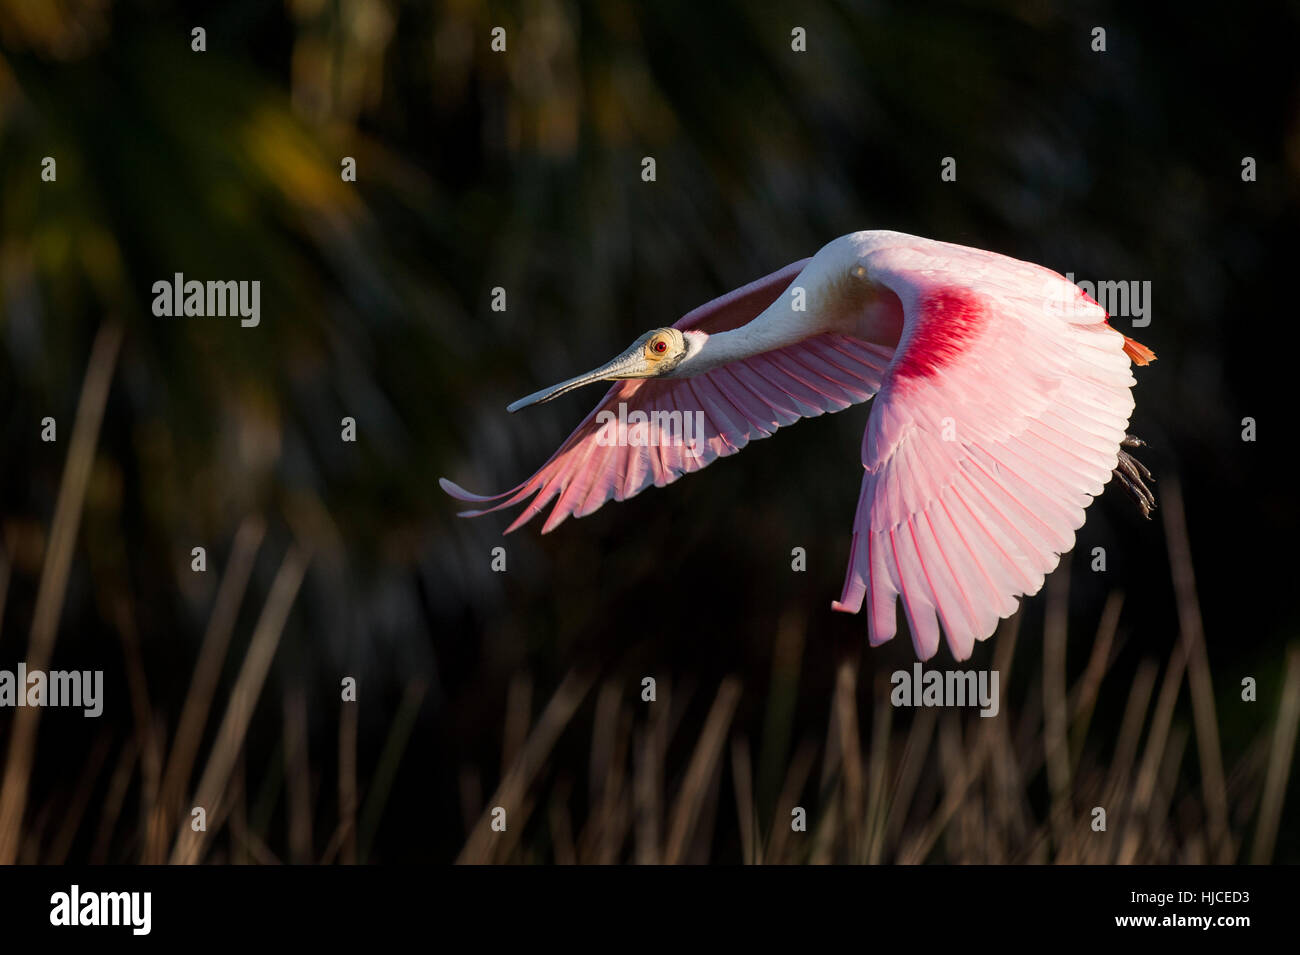 A Roseate Spoonbill flies in front of a dark background as the early morning sun lights up its bright pink wings. Stock Photo